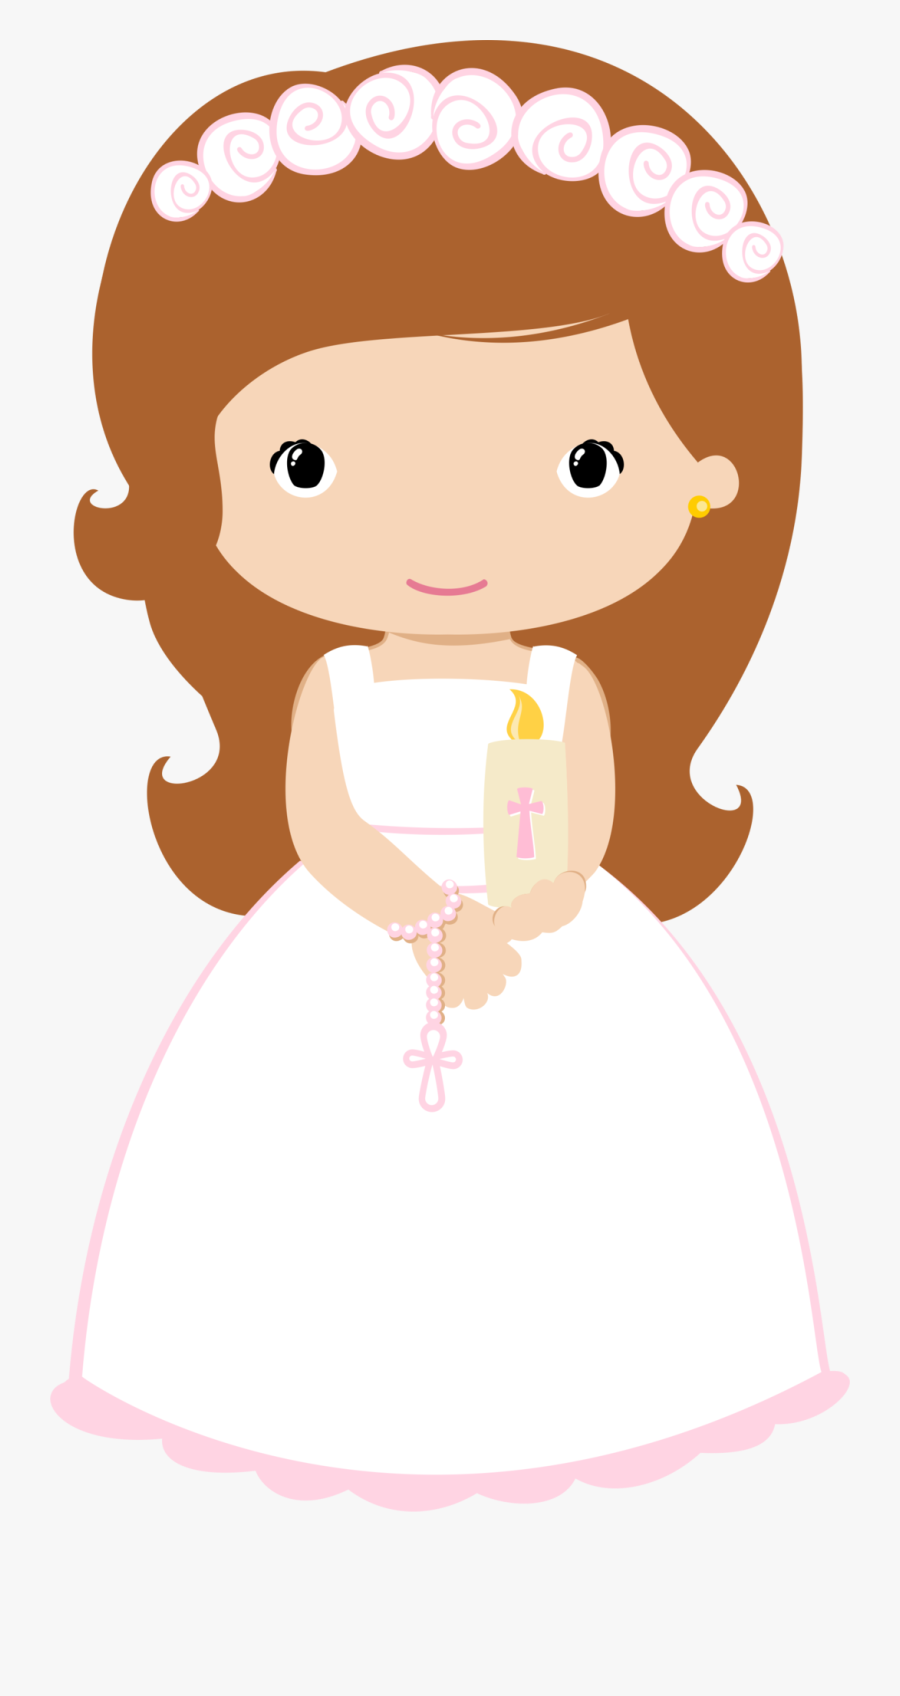 4shared - Clipart Communion Girl Png Wave Hair, Transparent Clipart